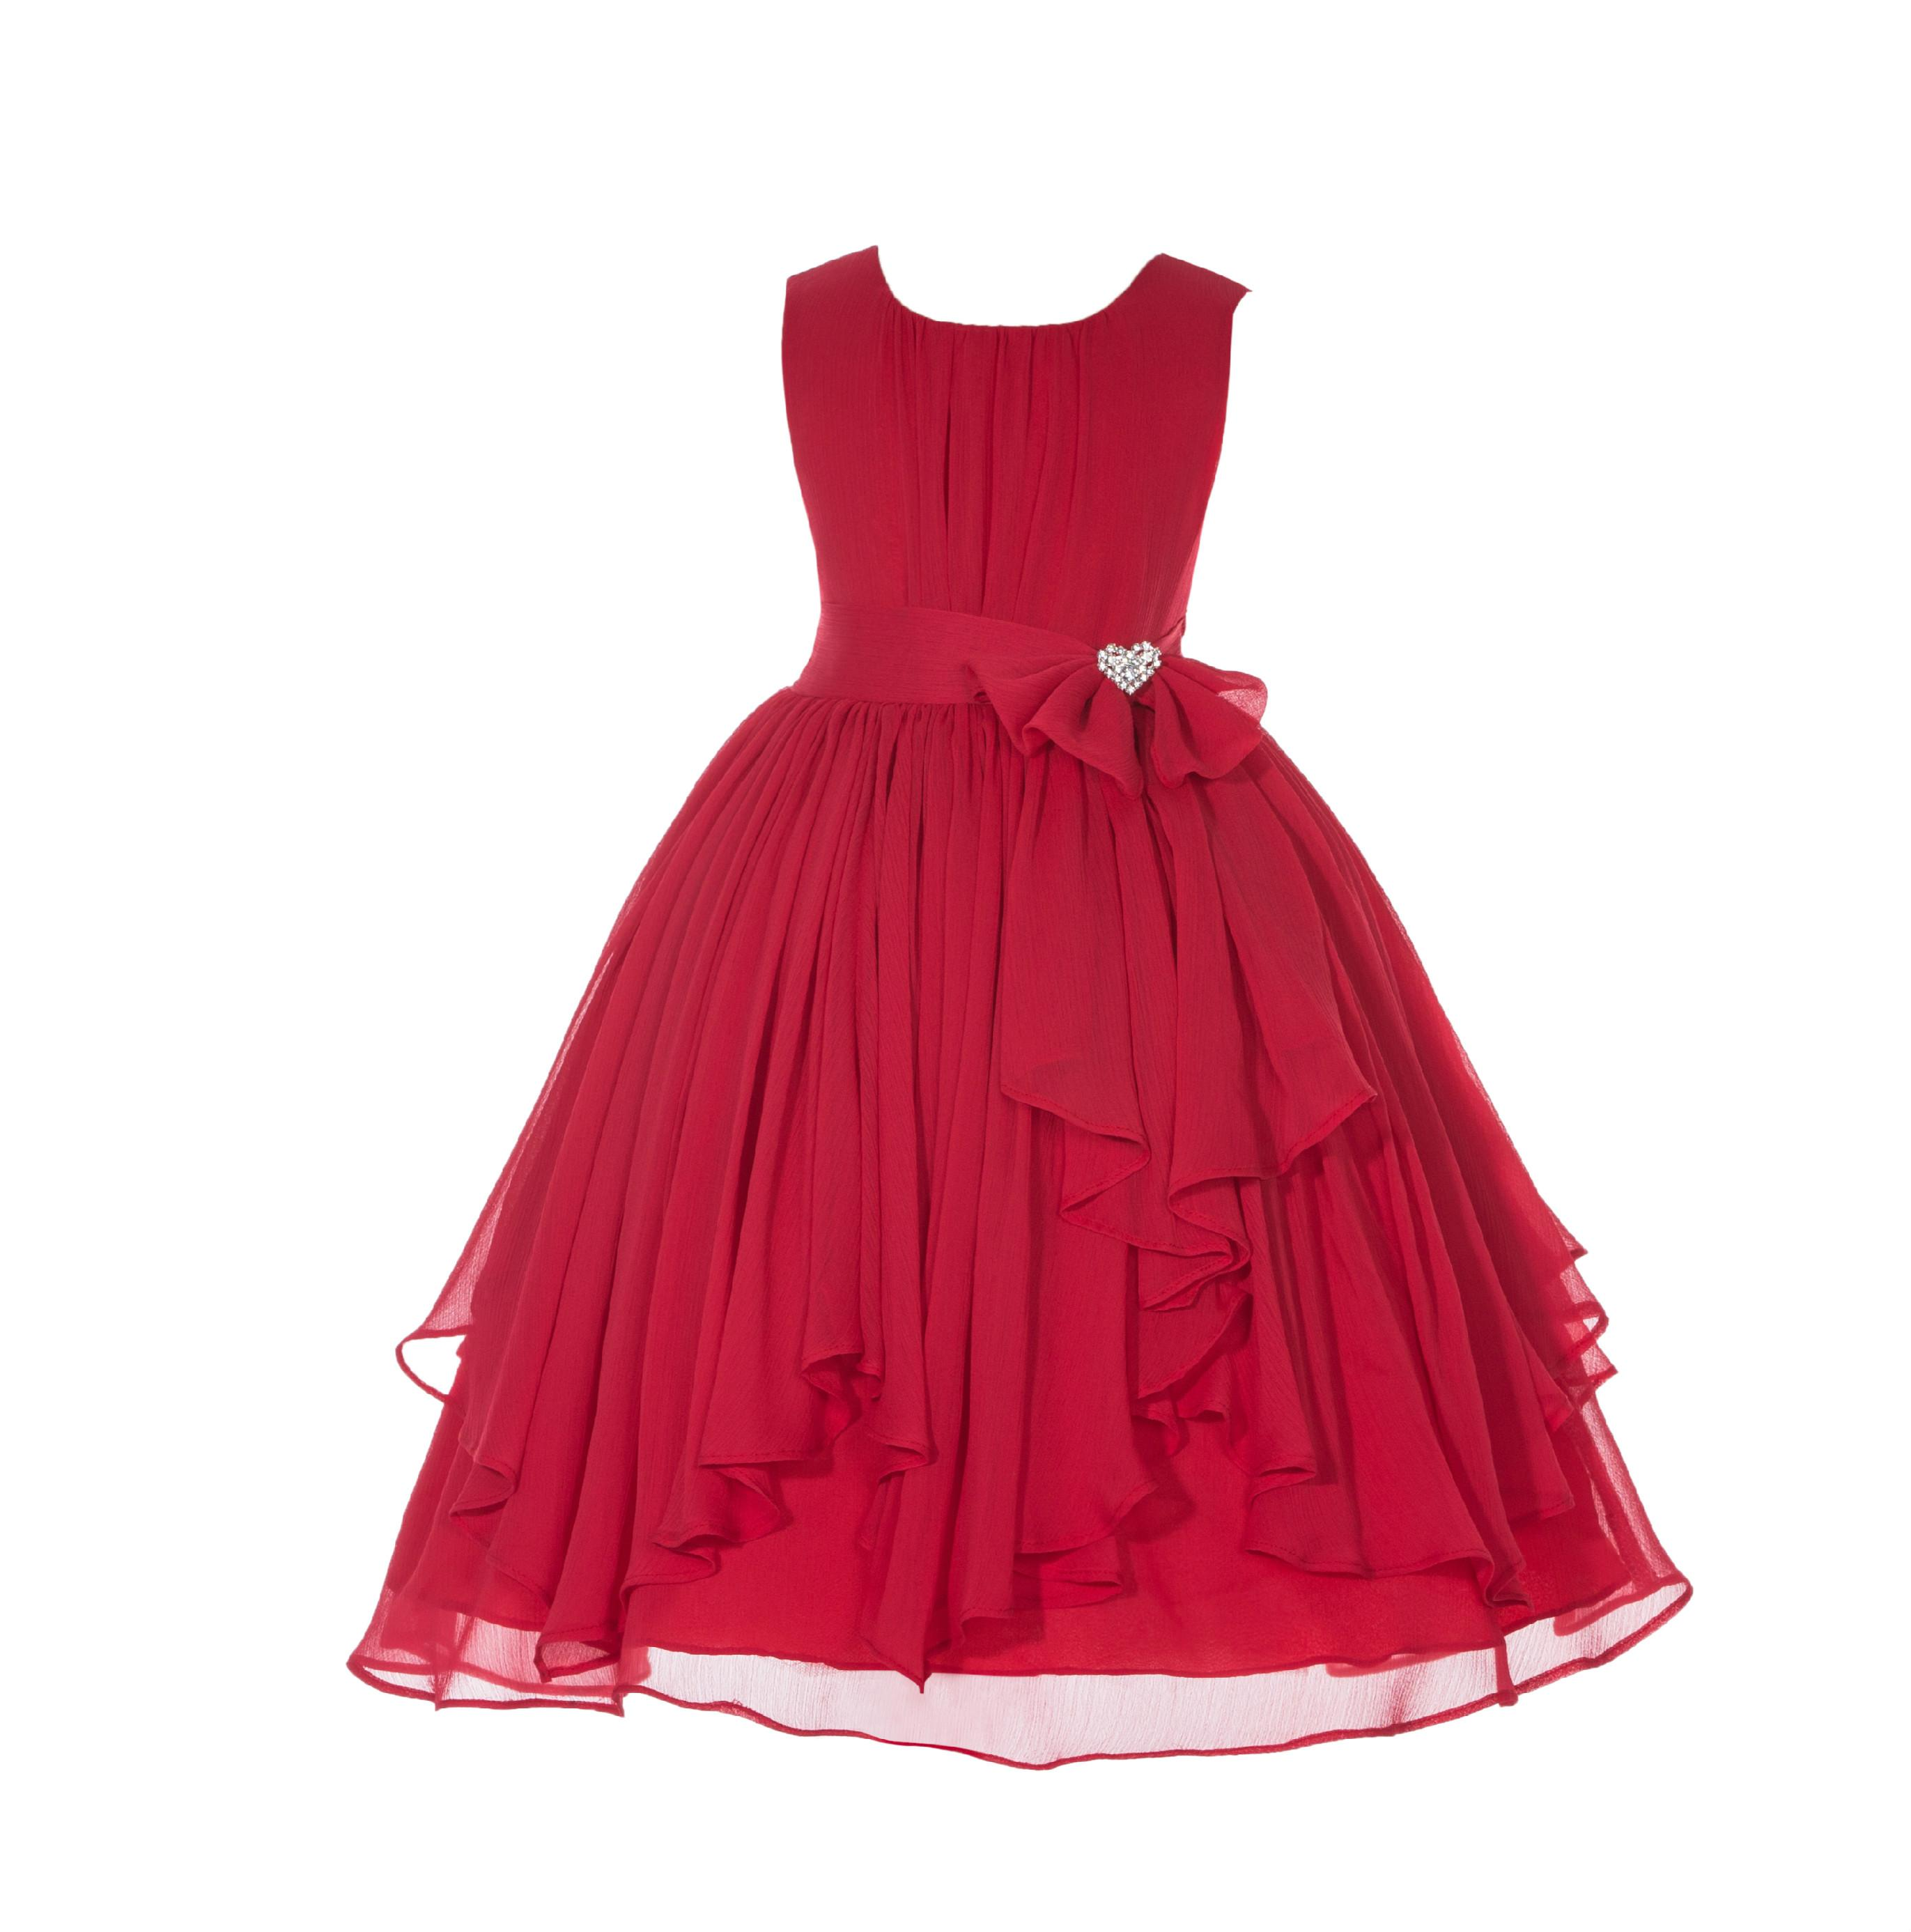 Ekidsbridal  Yoryu Chiffon Ruched Bodice Rhinestone Flower Girl Dress Toddler Wedding Pageant 162 red size 4